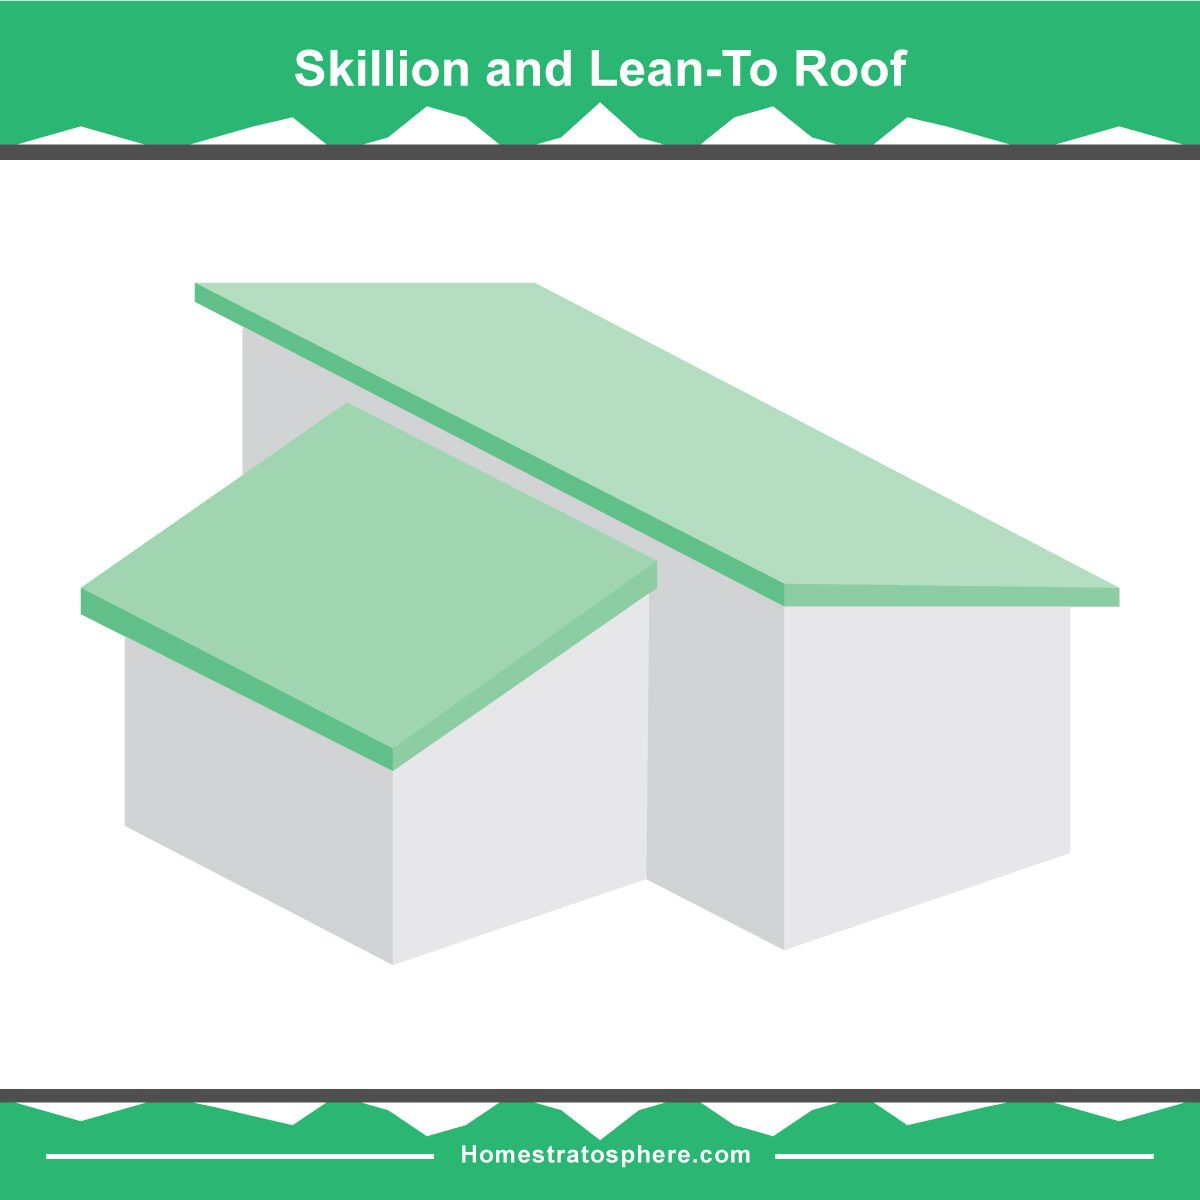 36 Types Of Roofs Styles For Houses Illustrated Roof Design Examples Skillion Roof Roof Design Lean To Roof